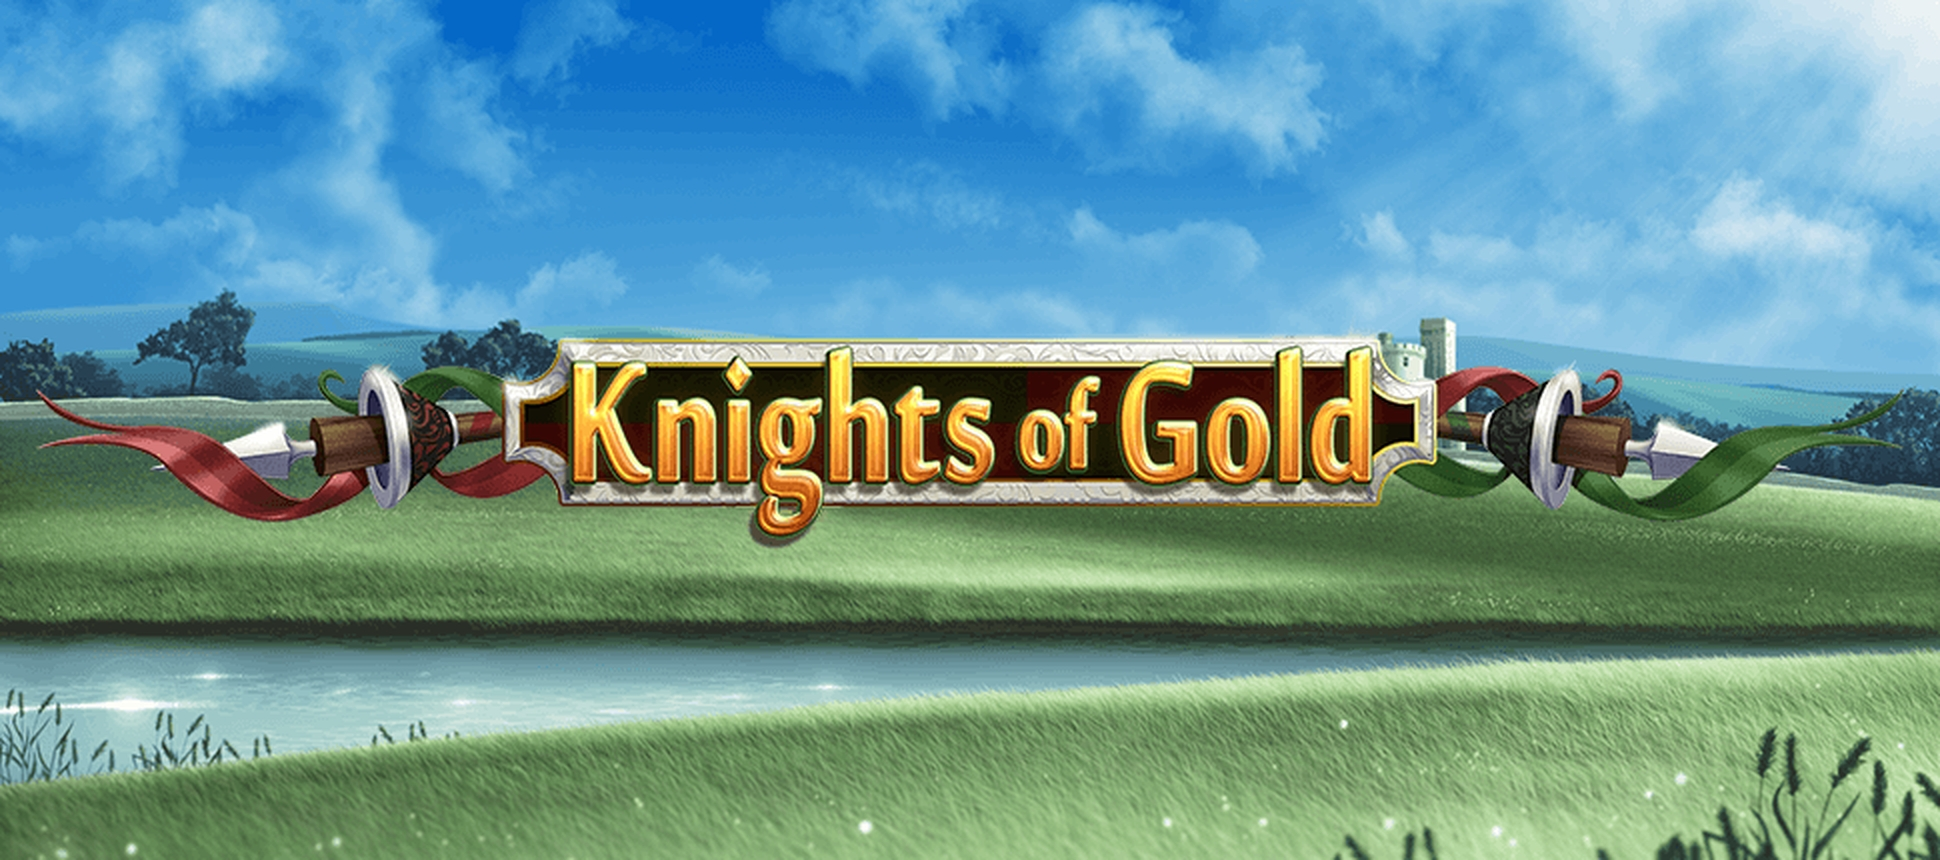 The Knights of Gold Online Slot Demo Game by Betdigital